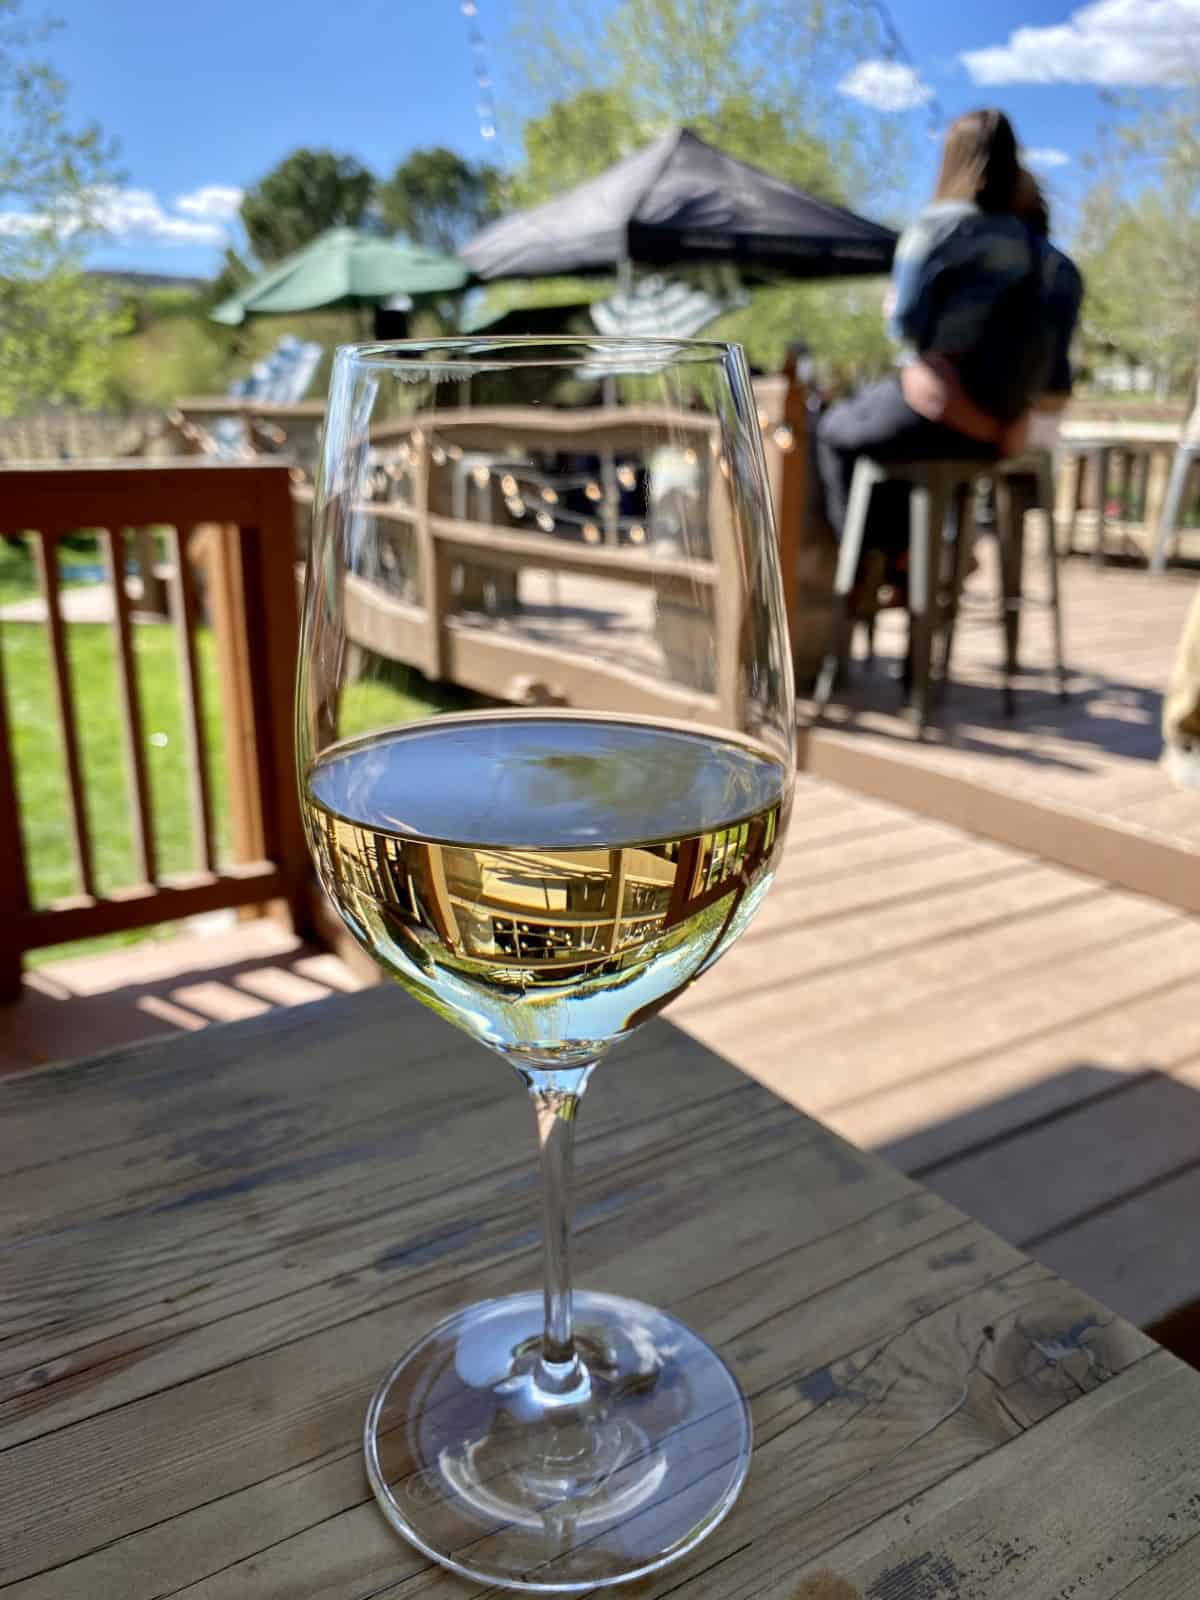 A Guide to Sedona Wineries | Wine tasting in Sedona, Arizona, was quite a surprise and makes a perfect day trip from Sedona. Most of these wineries are only 20 minutes from downtown Sedona and are a lovely day of wine, music, & scenery. Arizona wineries you should visit, what to do in Sedona! #sedona #wineries #arizona